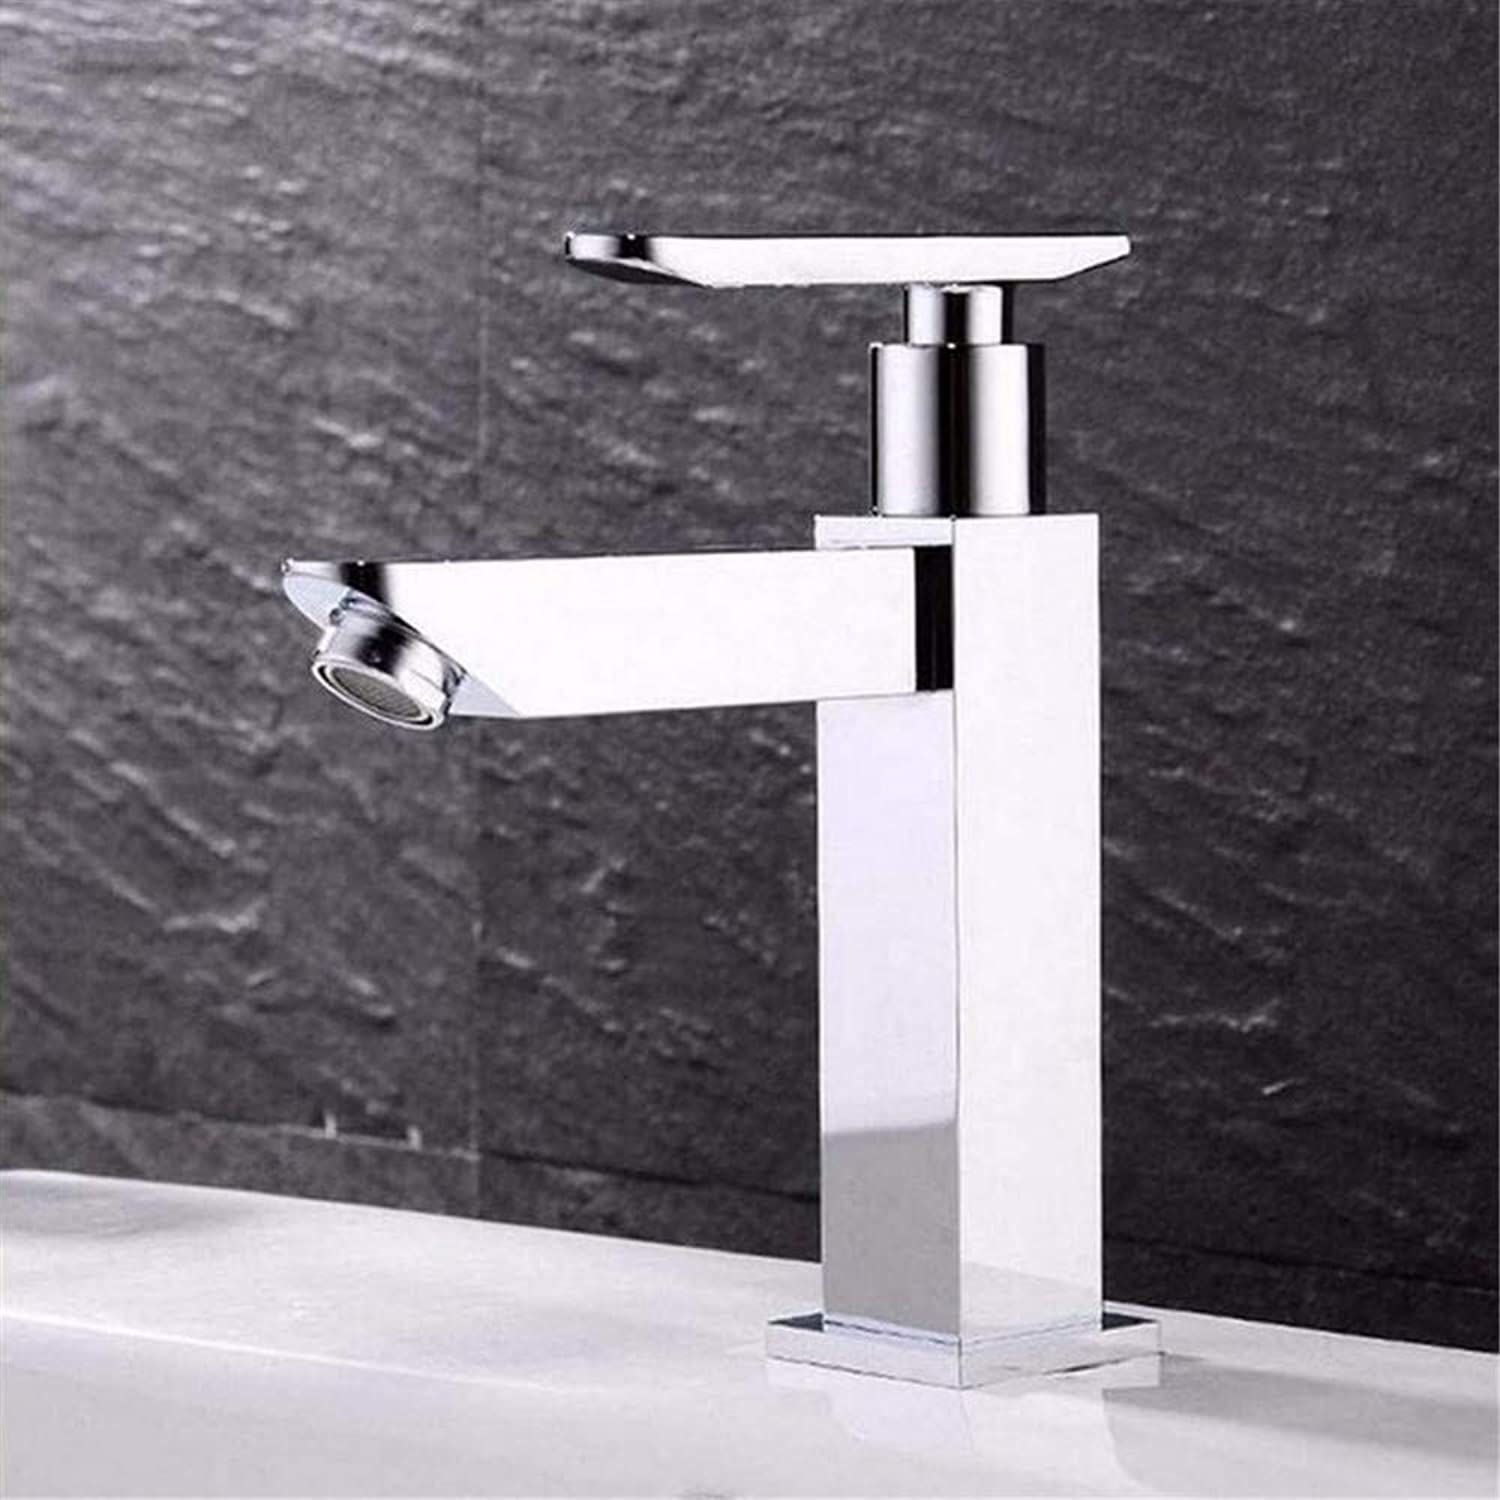 Luxury Plated Mixer Faucet Tap Bathroom Faucet Brass Modern Basin Sink Faucet Chrome-Coated Single Handle Water Faucet